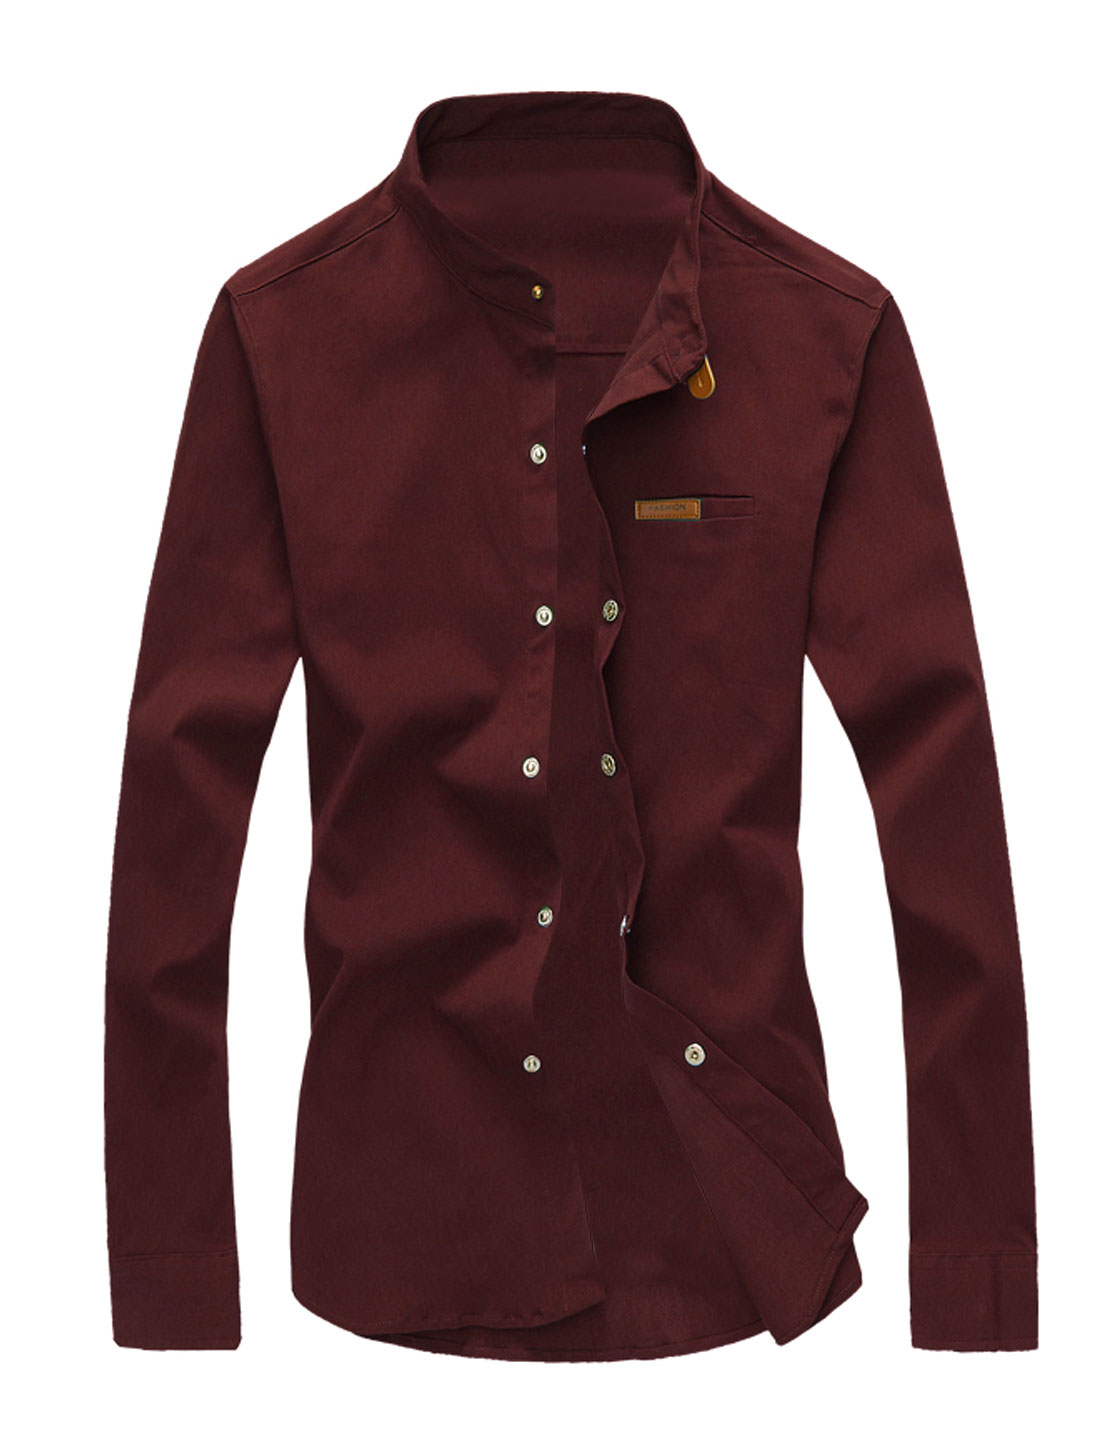 Man Long Sleeves Stand Collar Button Down Shirts Burgundy M